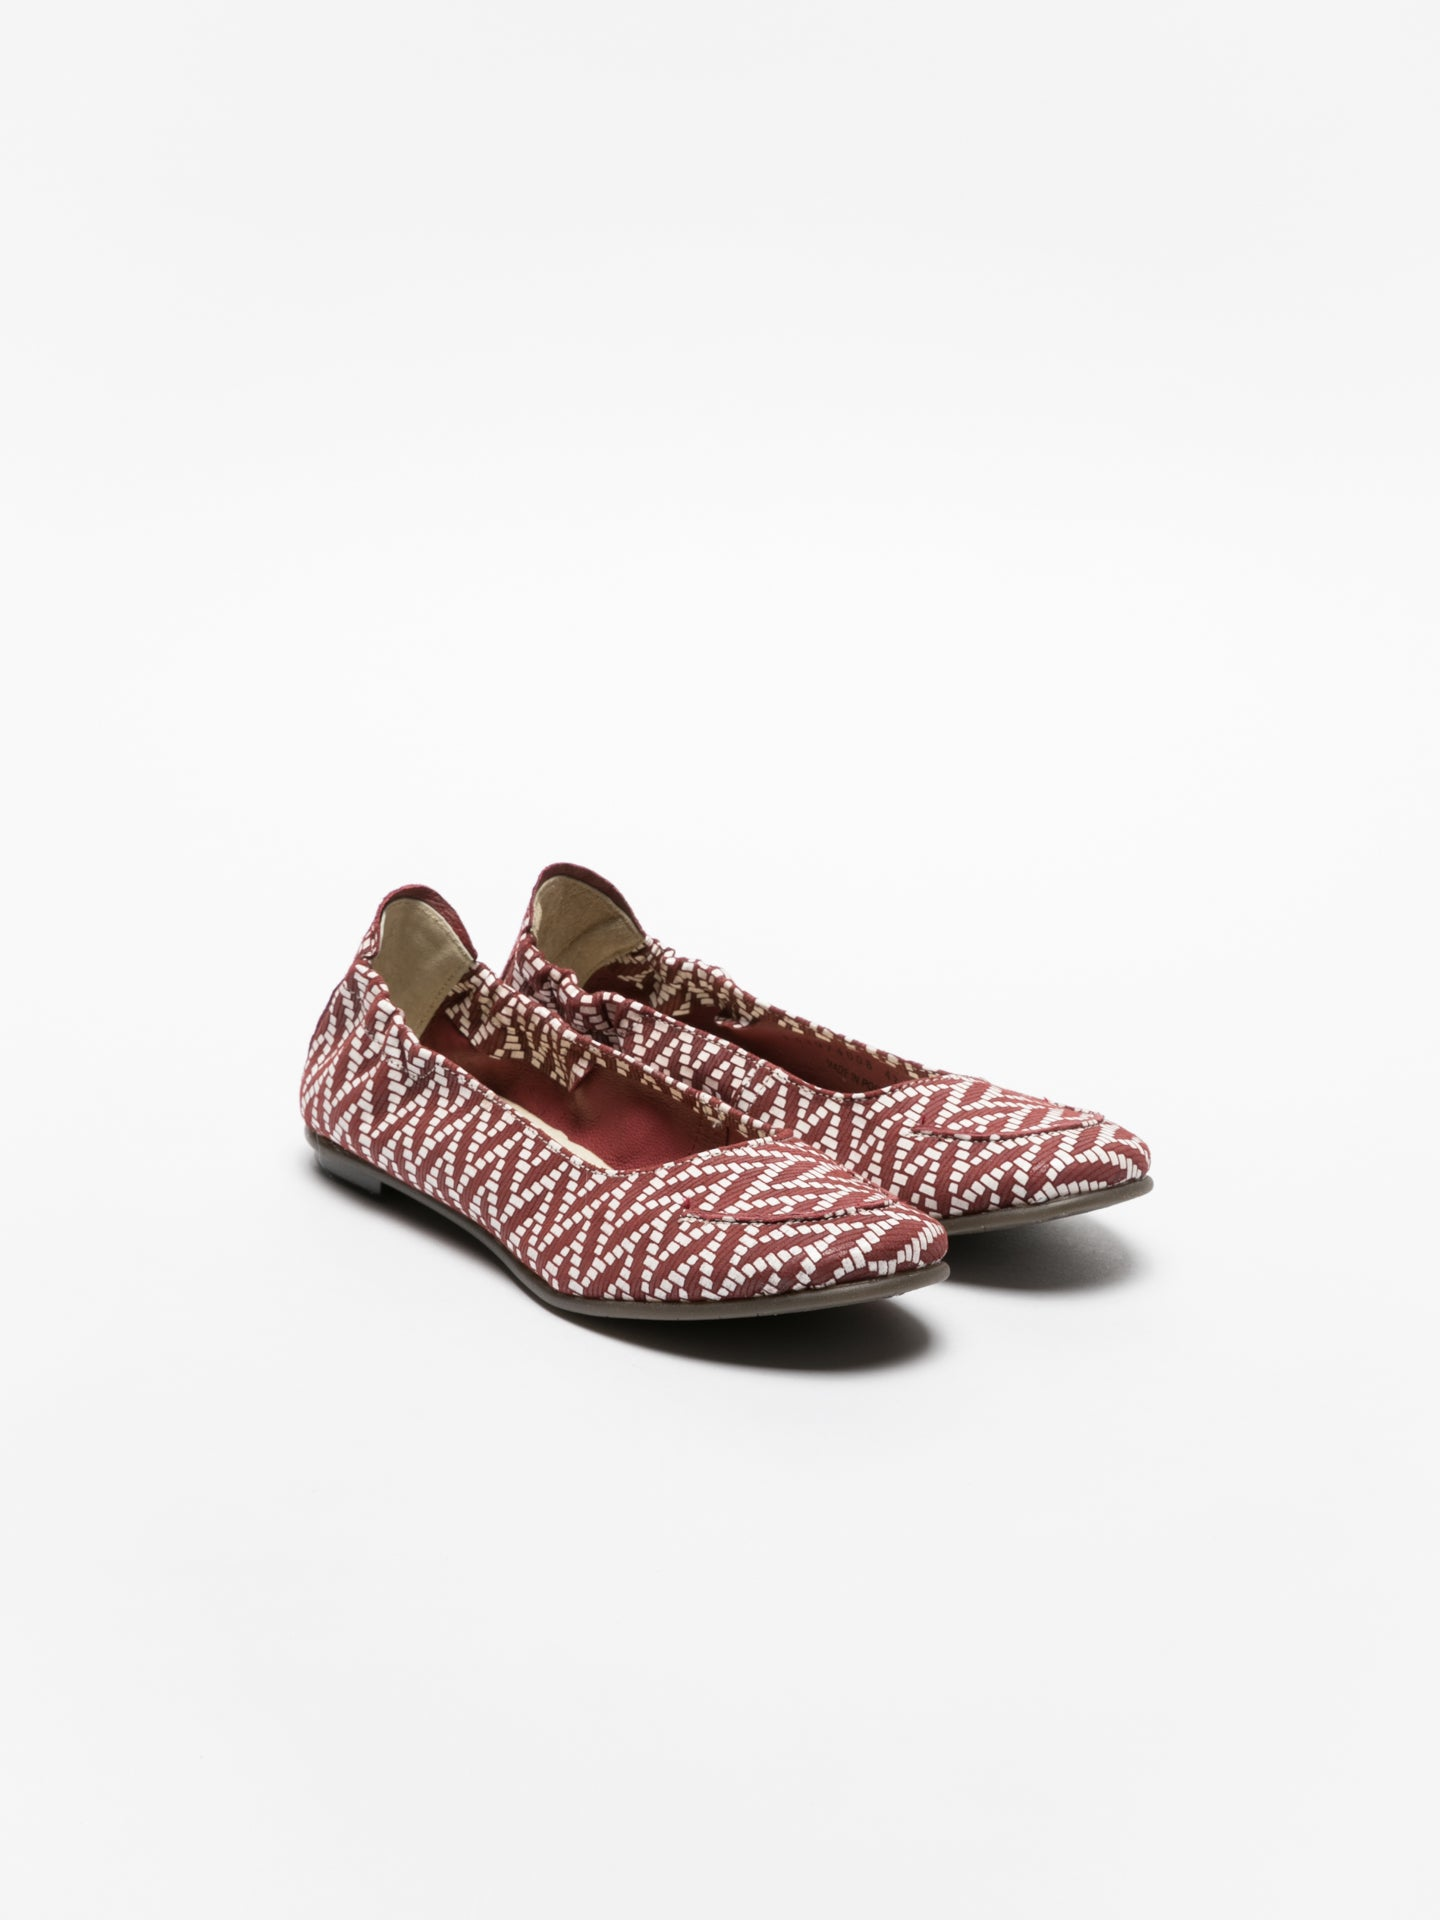 Fly London Firebrick Round Toe Ballerinas